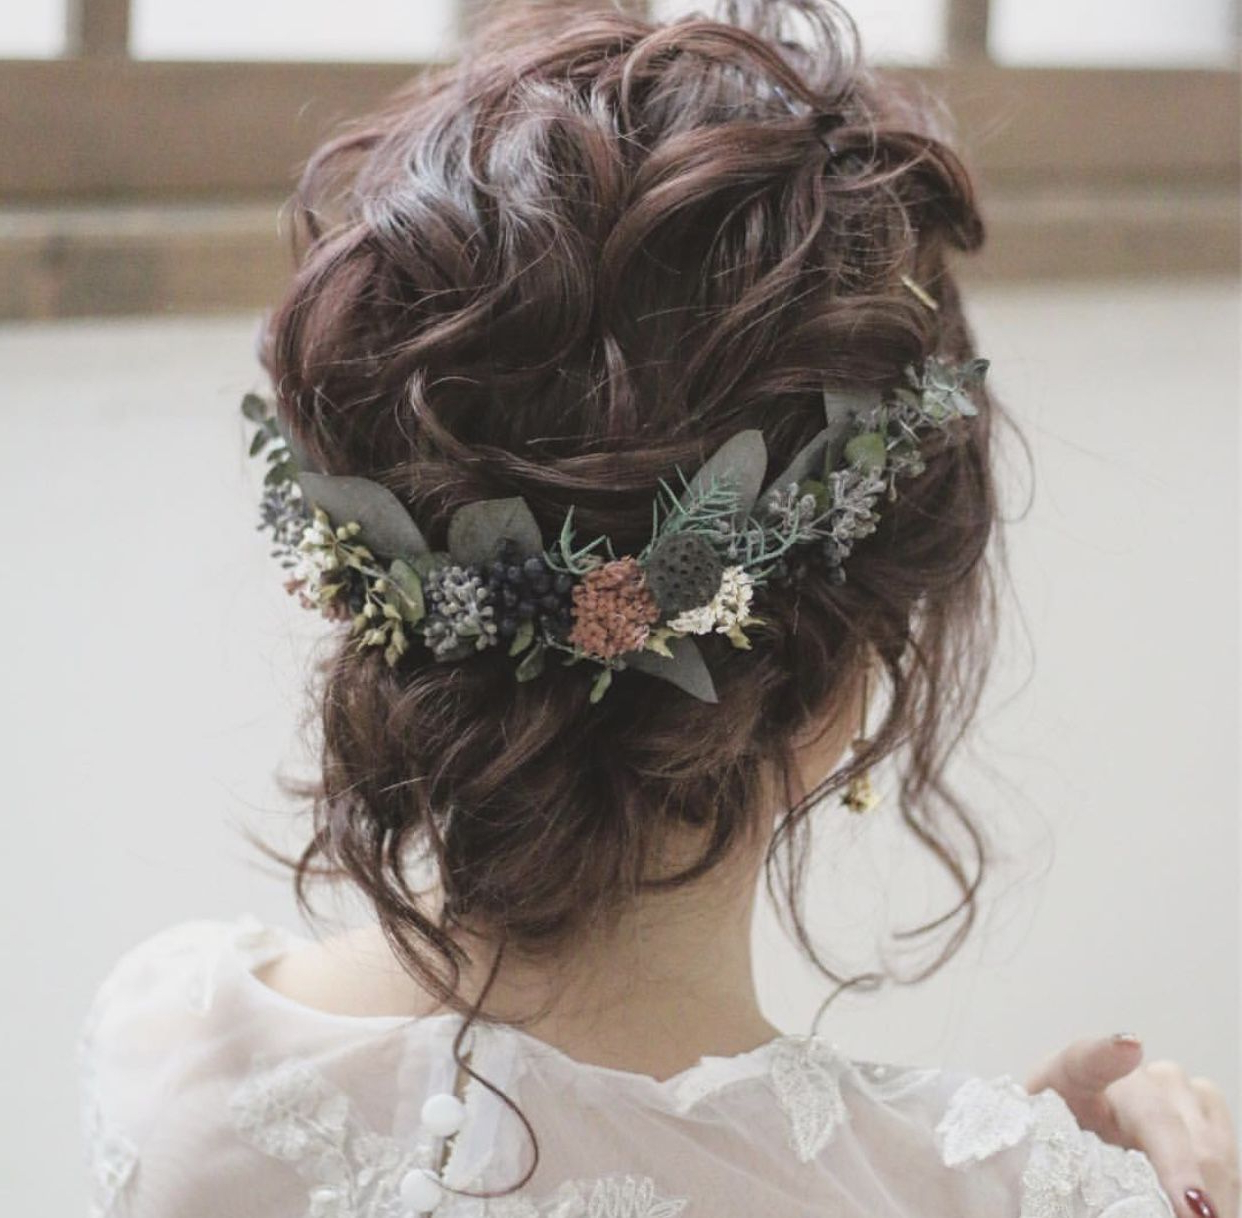 Fashionable Romantic Florals Updo Hairstyles Intended For Whimsical / Bohemian / Romantic (View 15 of 20)